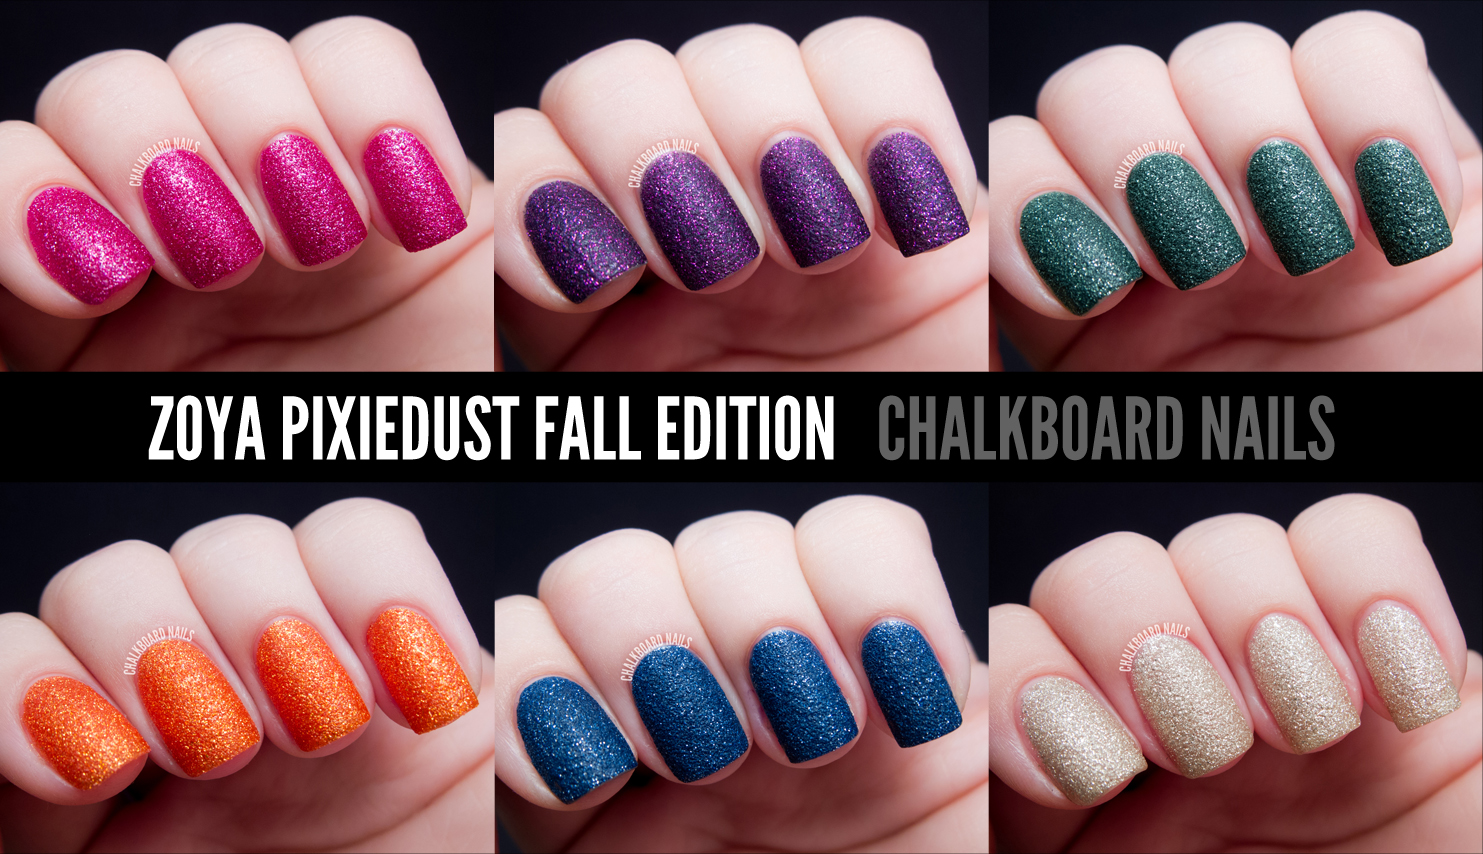 Zoya Fall 2017 Pixiedust Textured Polish Swatches